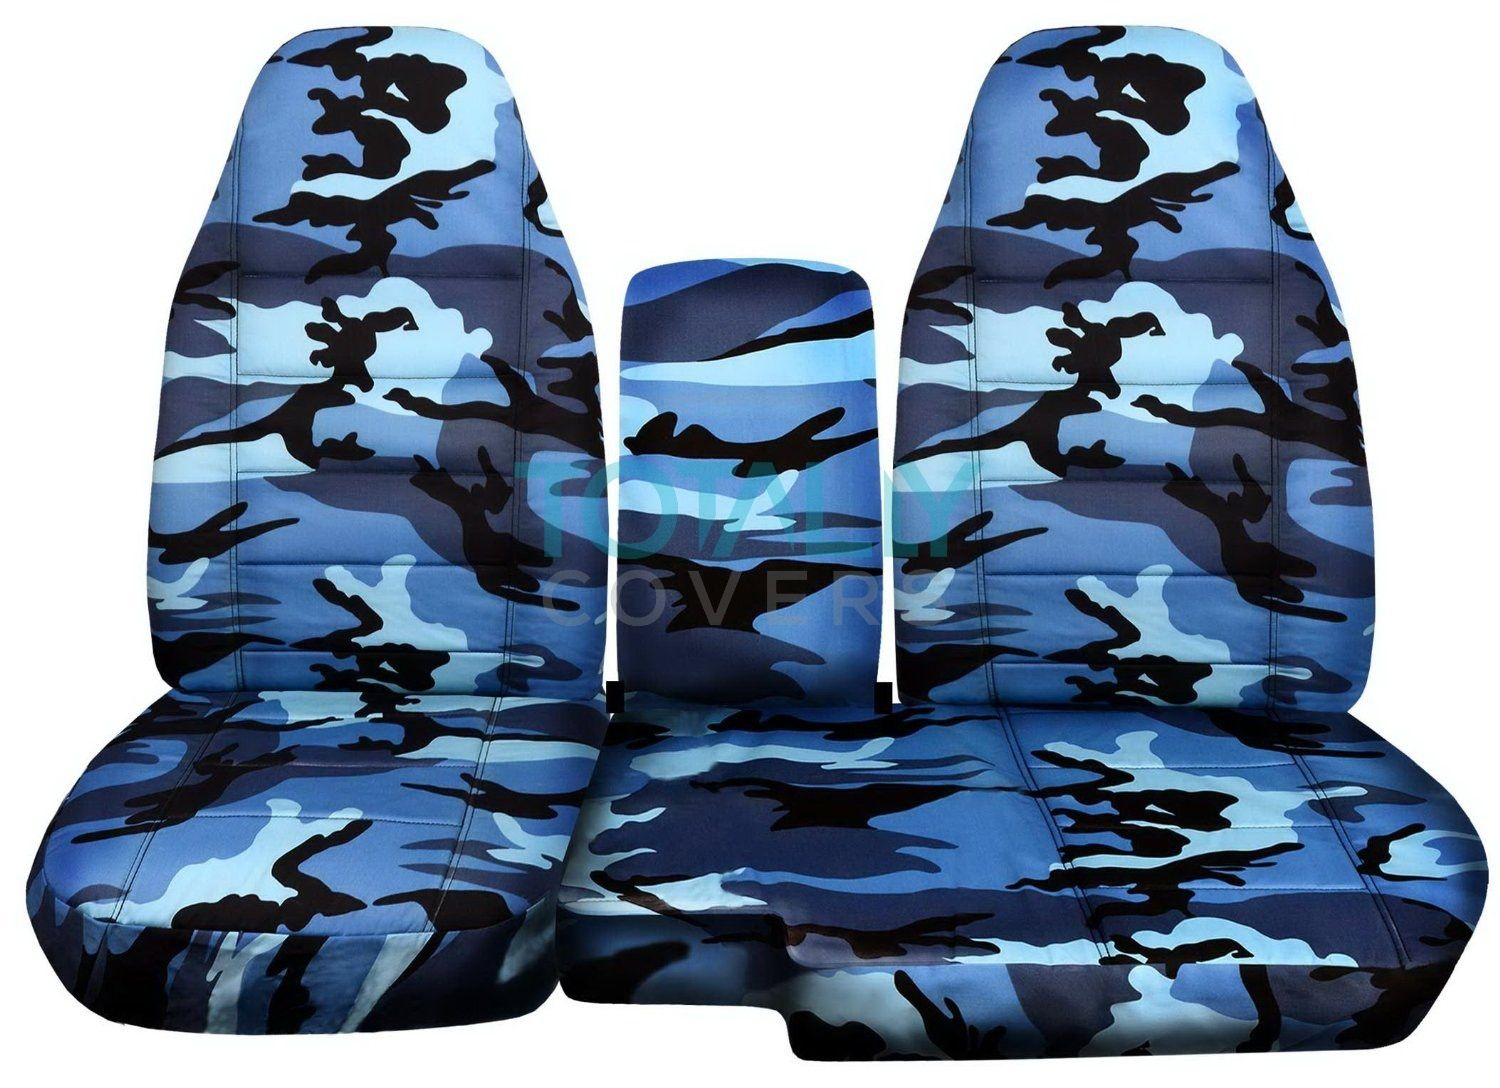 The 12 Best 1998 Ford Ranger Seat Covers Https Jetsuv Com The 12 Best 1998 Ford Ranger Seat Covers Fordcars Truck Seat Covers Ford Ranger Camo Seat Covers